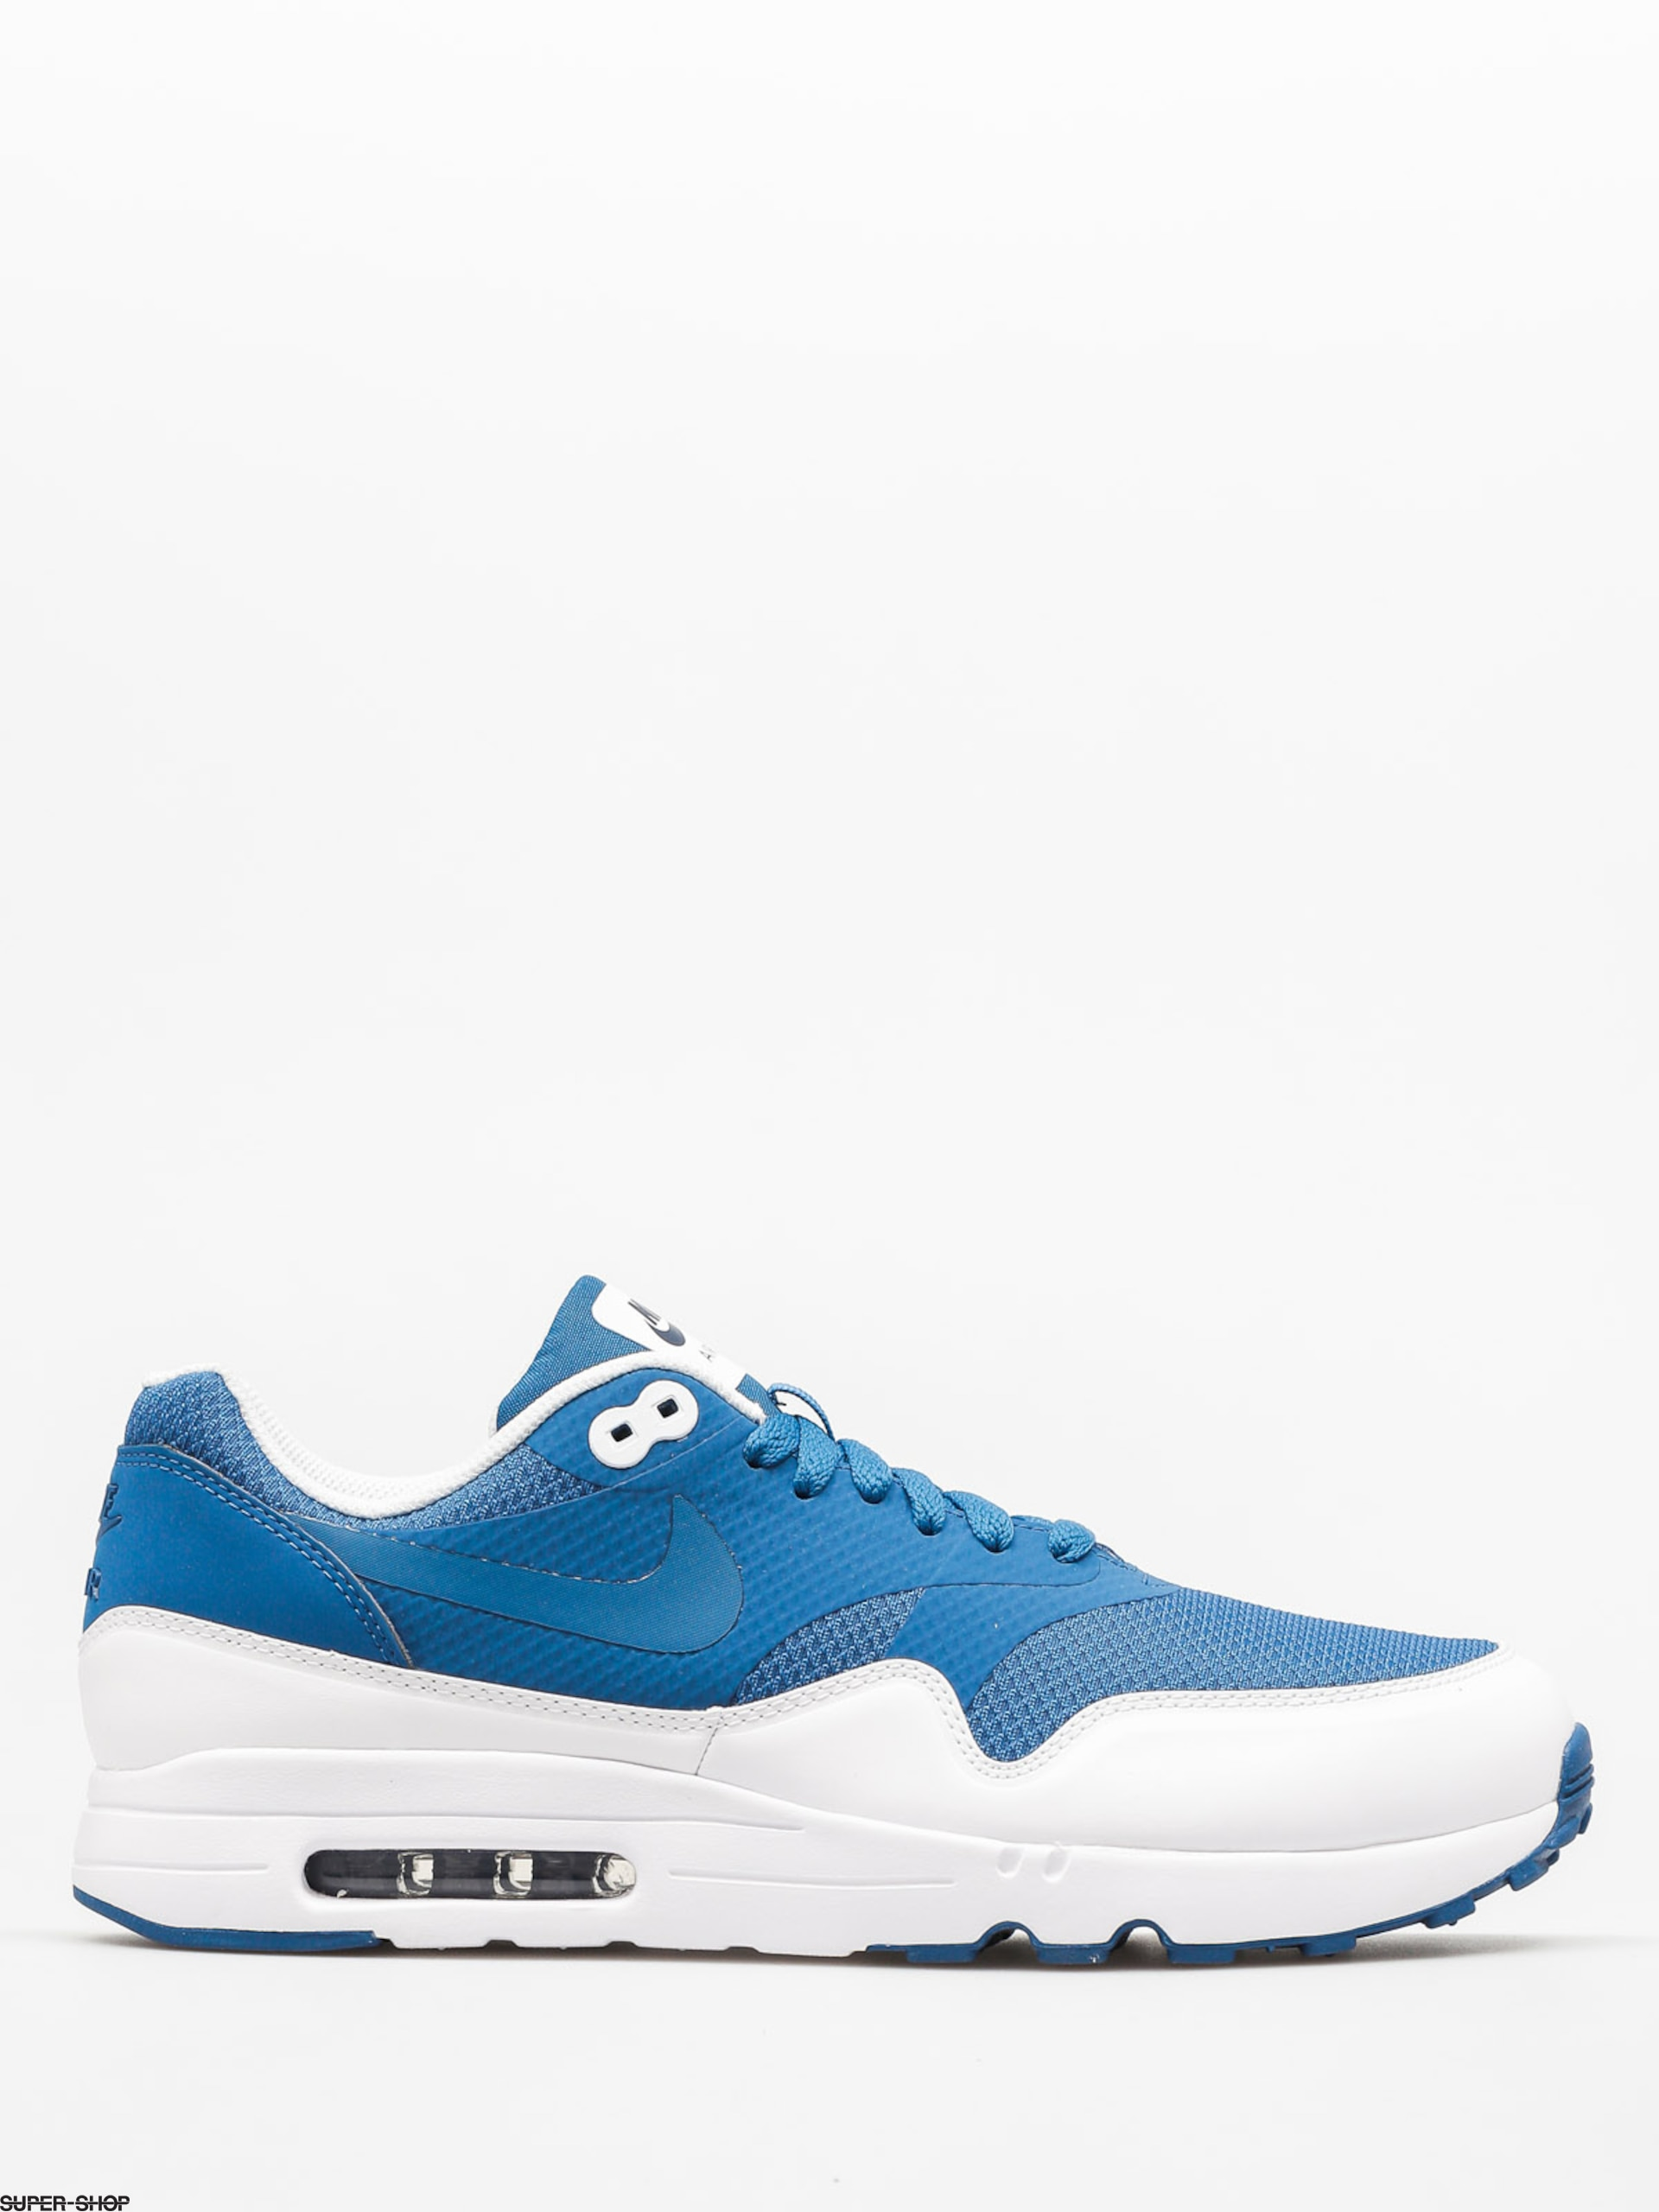 Nike Shoes Air Max 1 (Ultra 2.0 Essential indrustial blue)